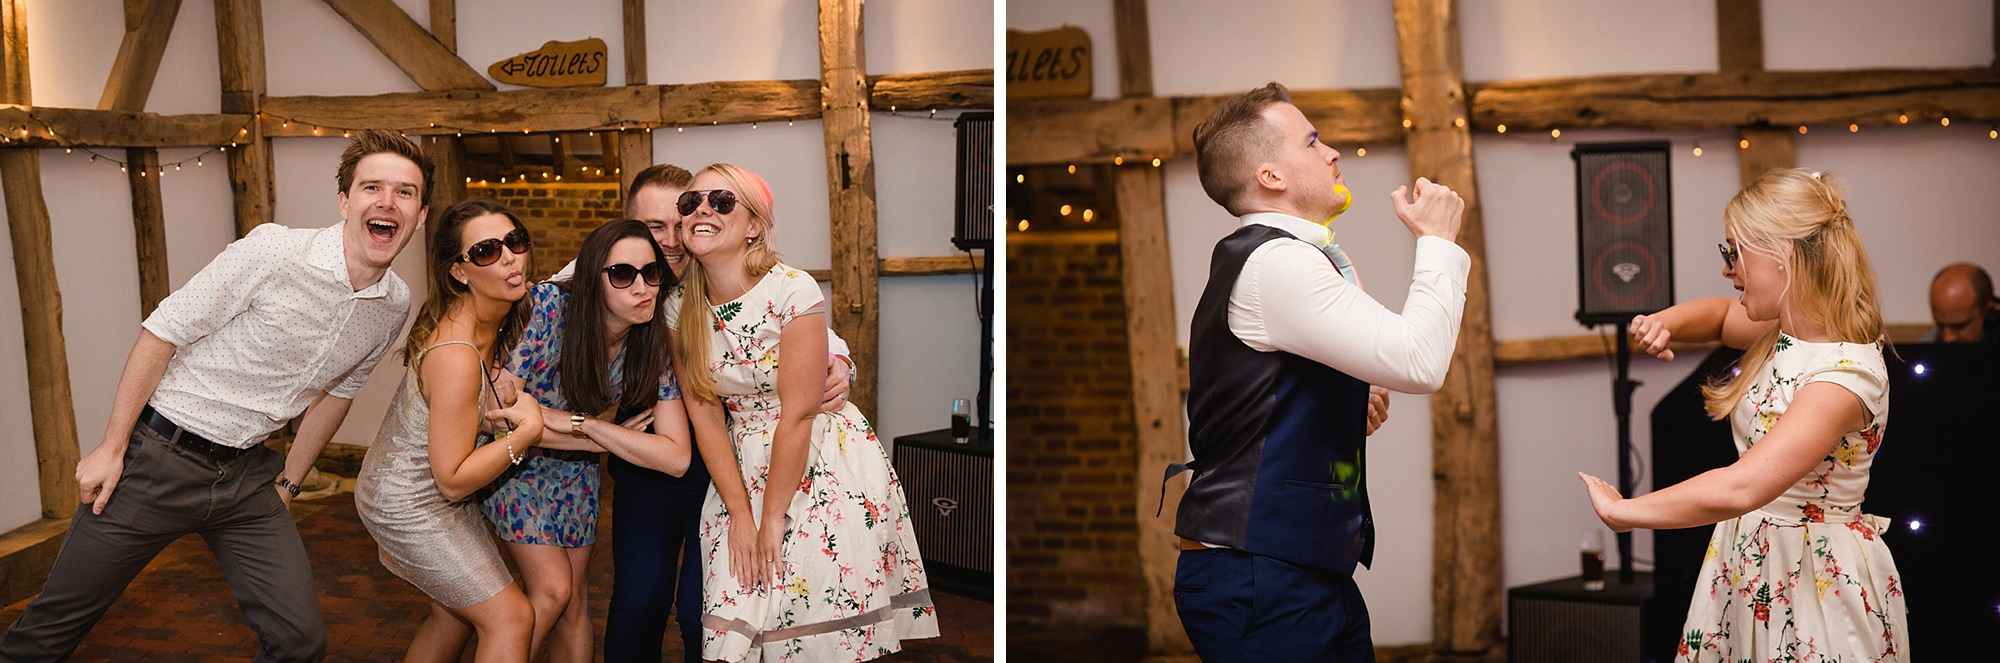 Old Greens Barn Newdigate wedding photography funny dancing